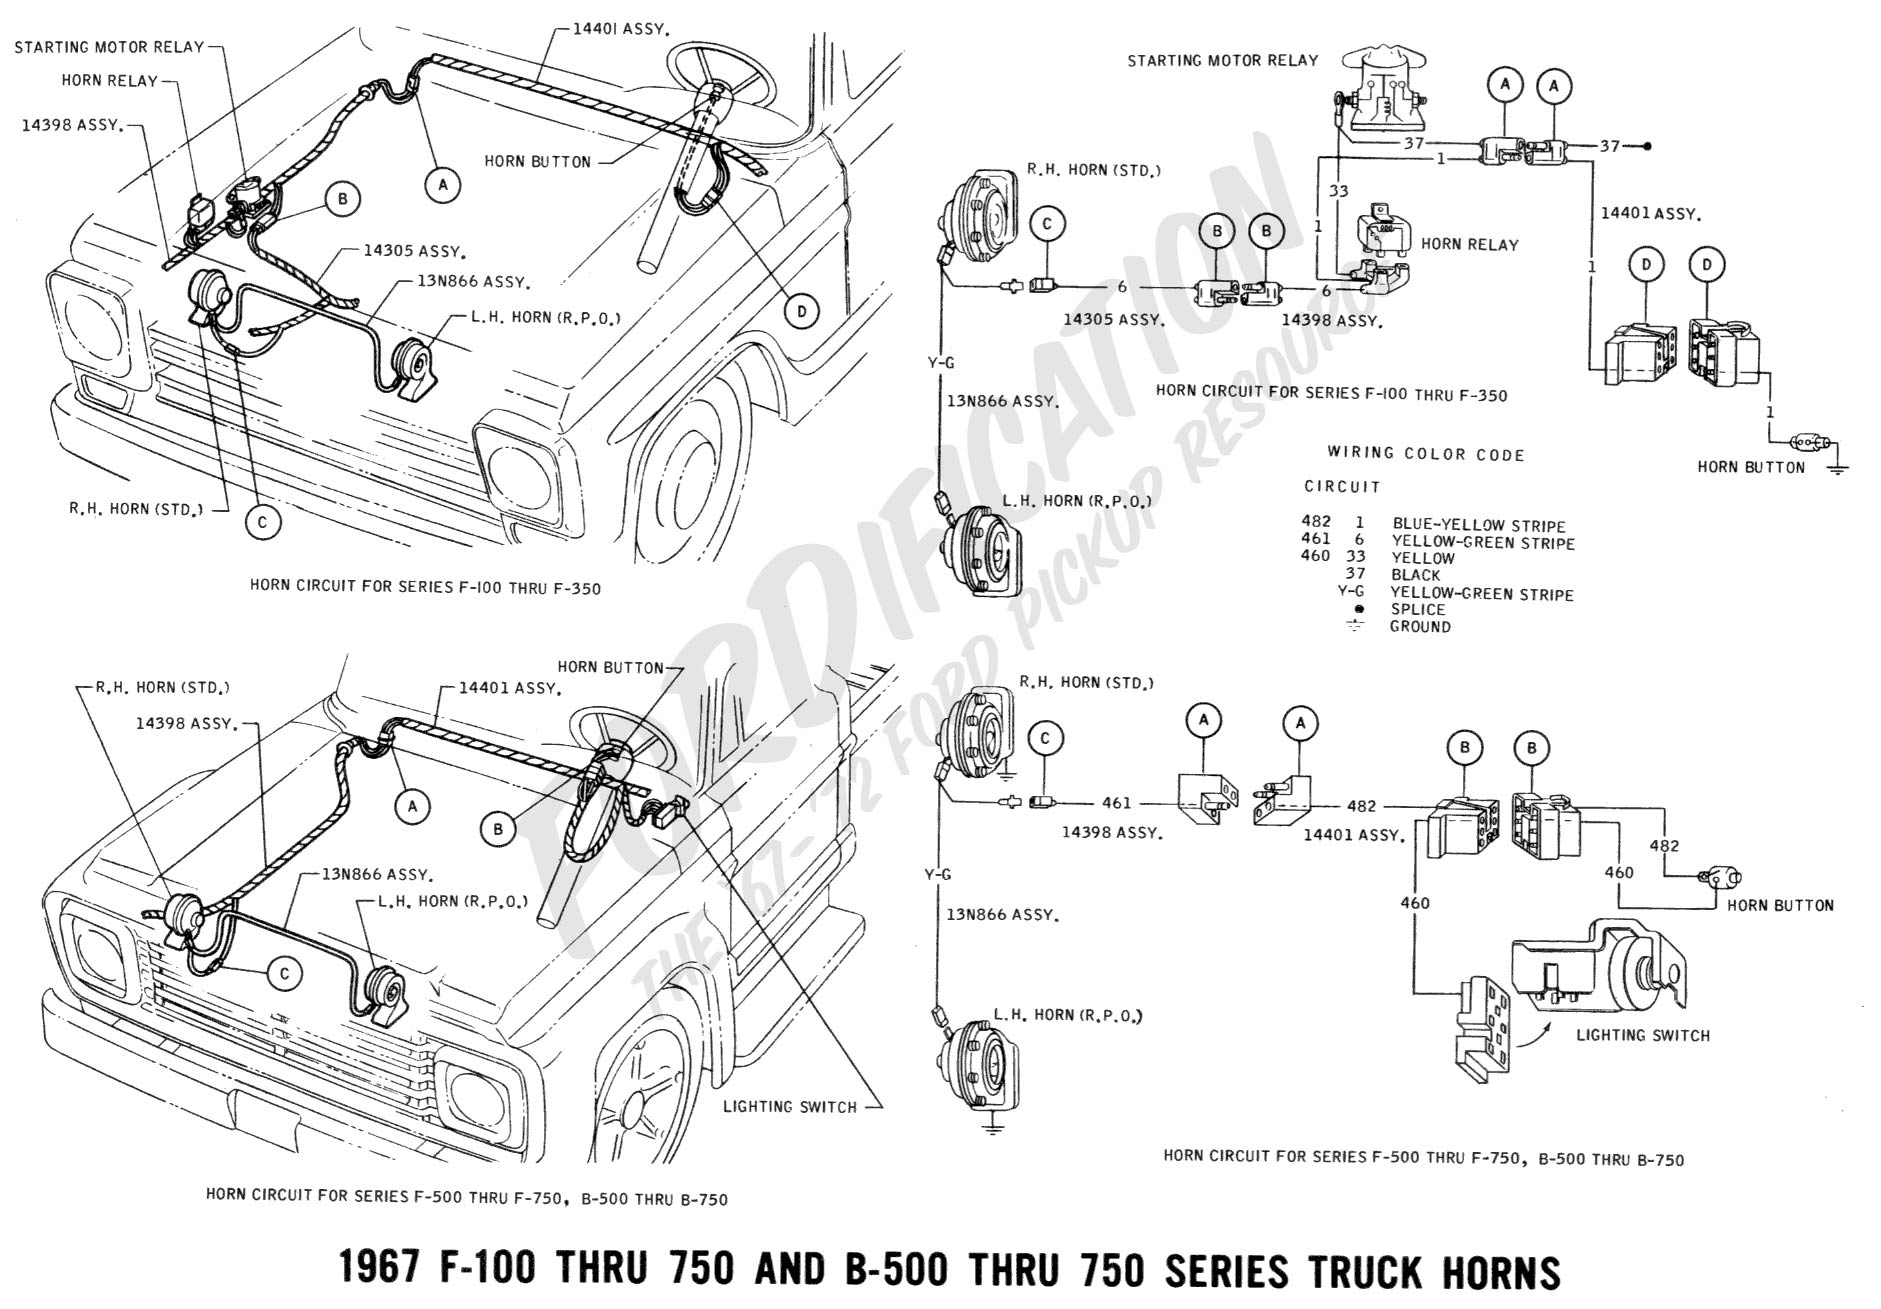 1971 Datsun 240z Wiring Diagram as well 1972 Ford Turn Signal Switch Wiring Diagram in addition 1963 Impala Steering Column Wiring Diagram 17 Photos furthermore Agora cgi likewise Plow Lights Meyer Diamond Truck Lite Light Kit 80800 Universal 07969. on turn signal switch wiring diagram